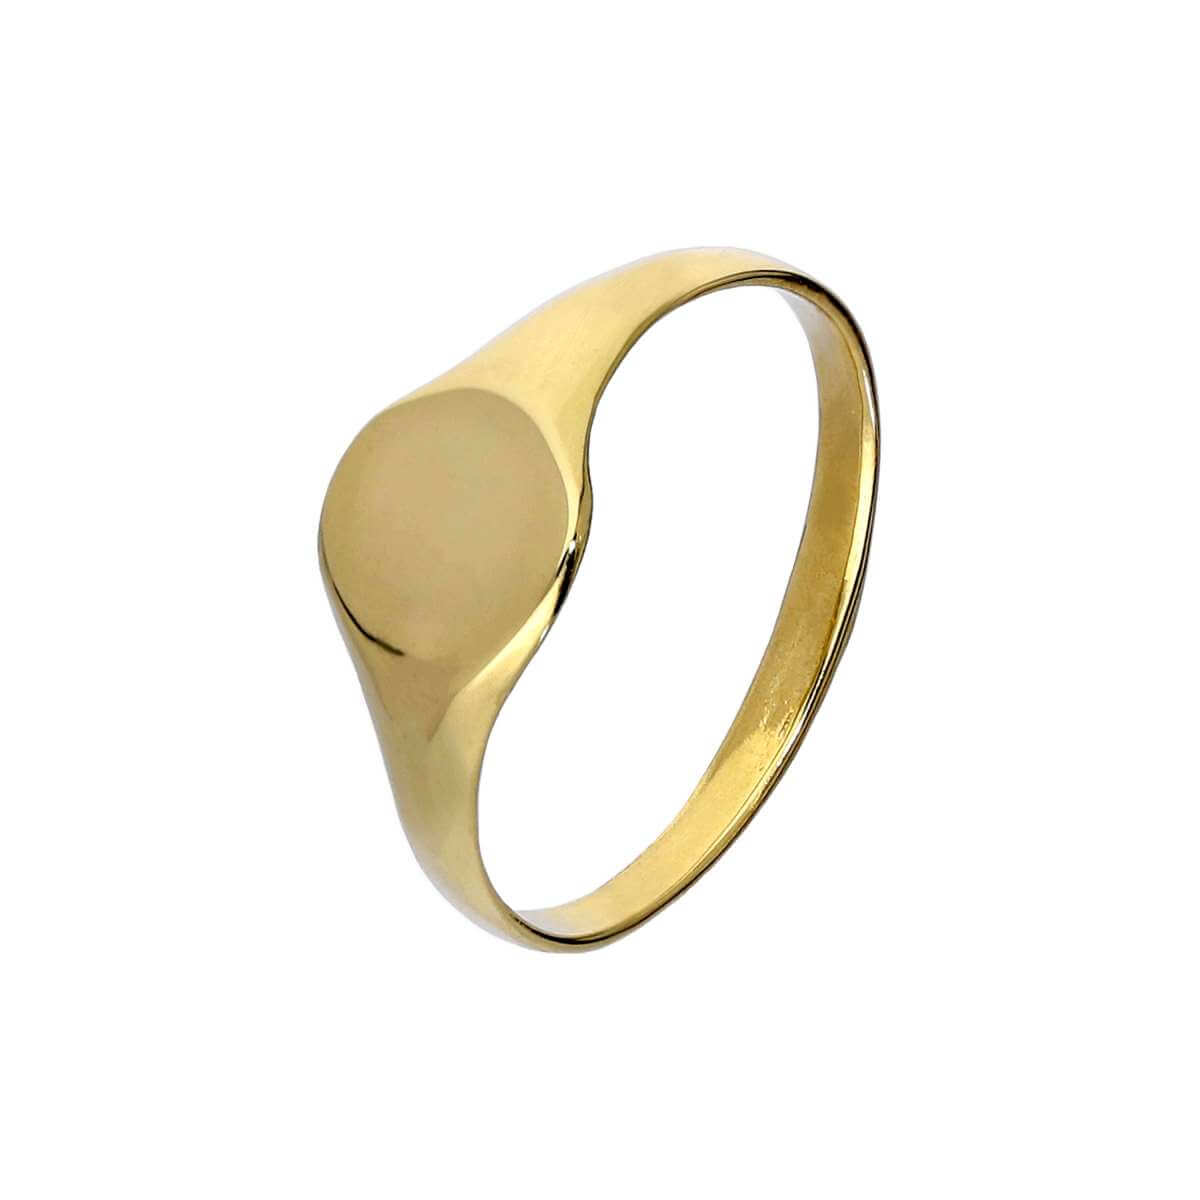 9ct Gold Engravable Childrens Round Signet Ring Size A - H